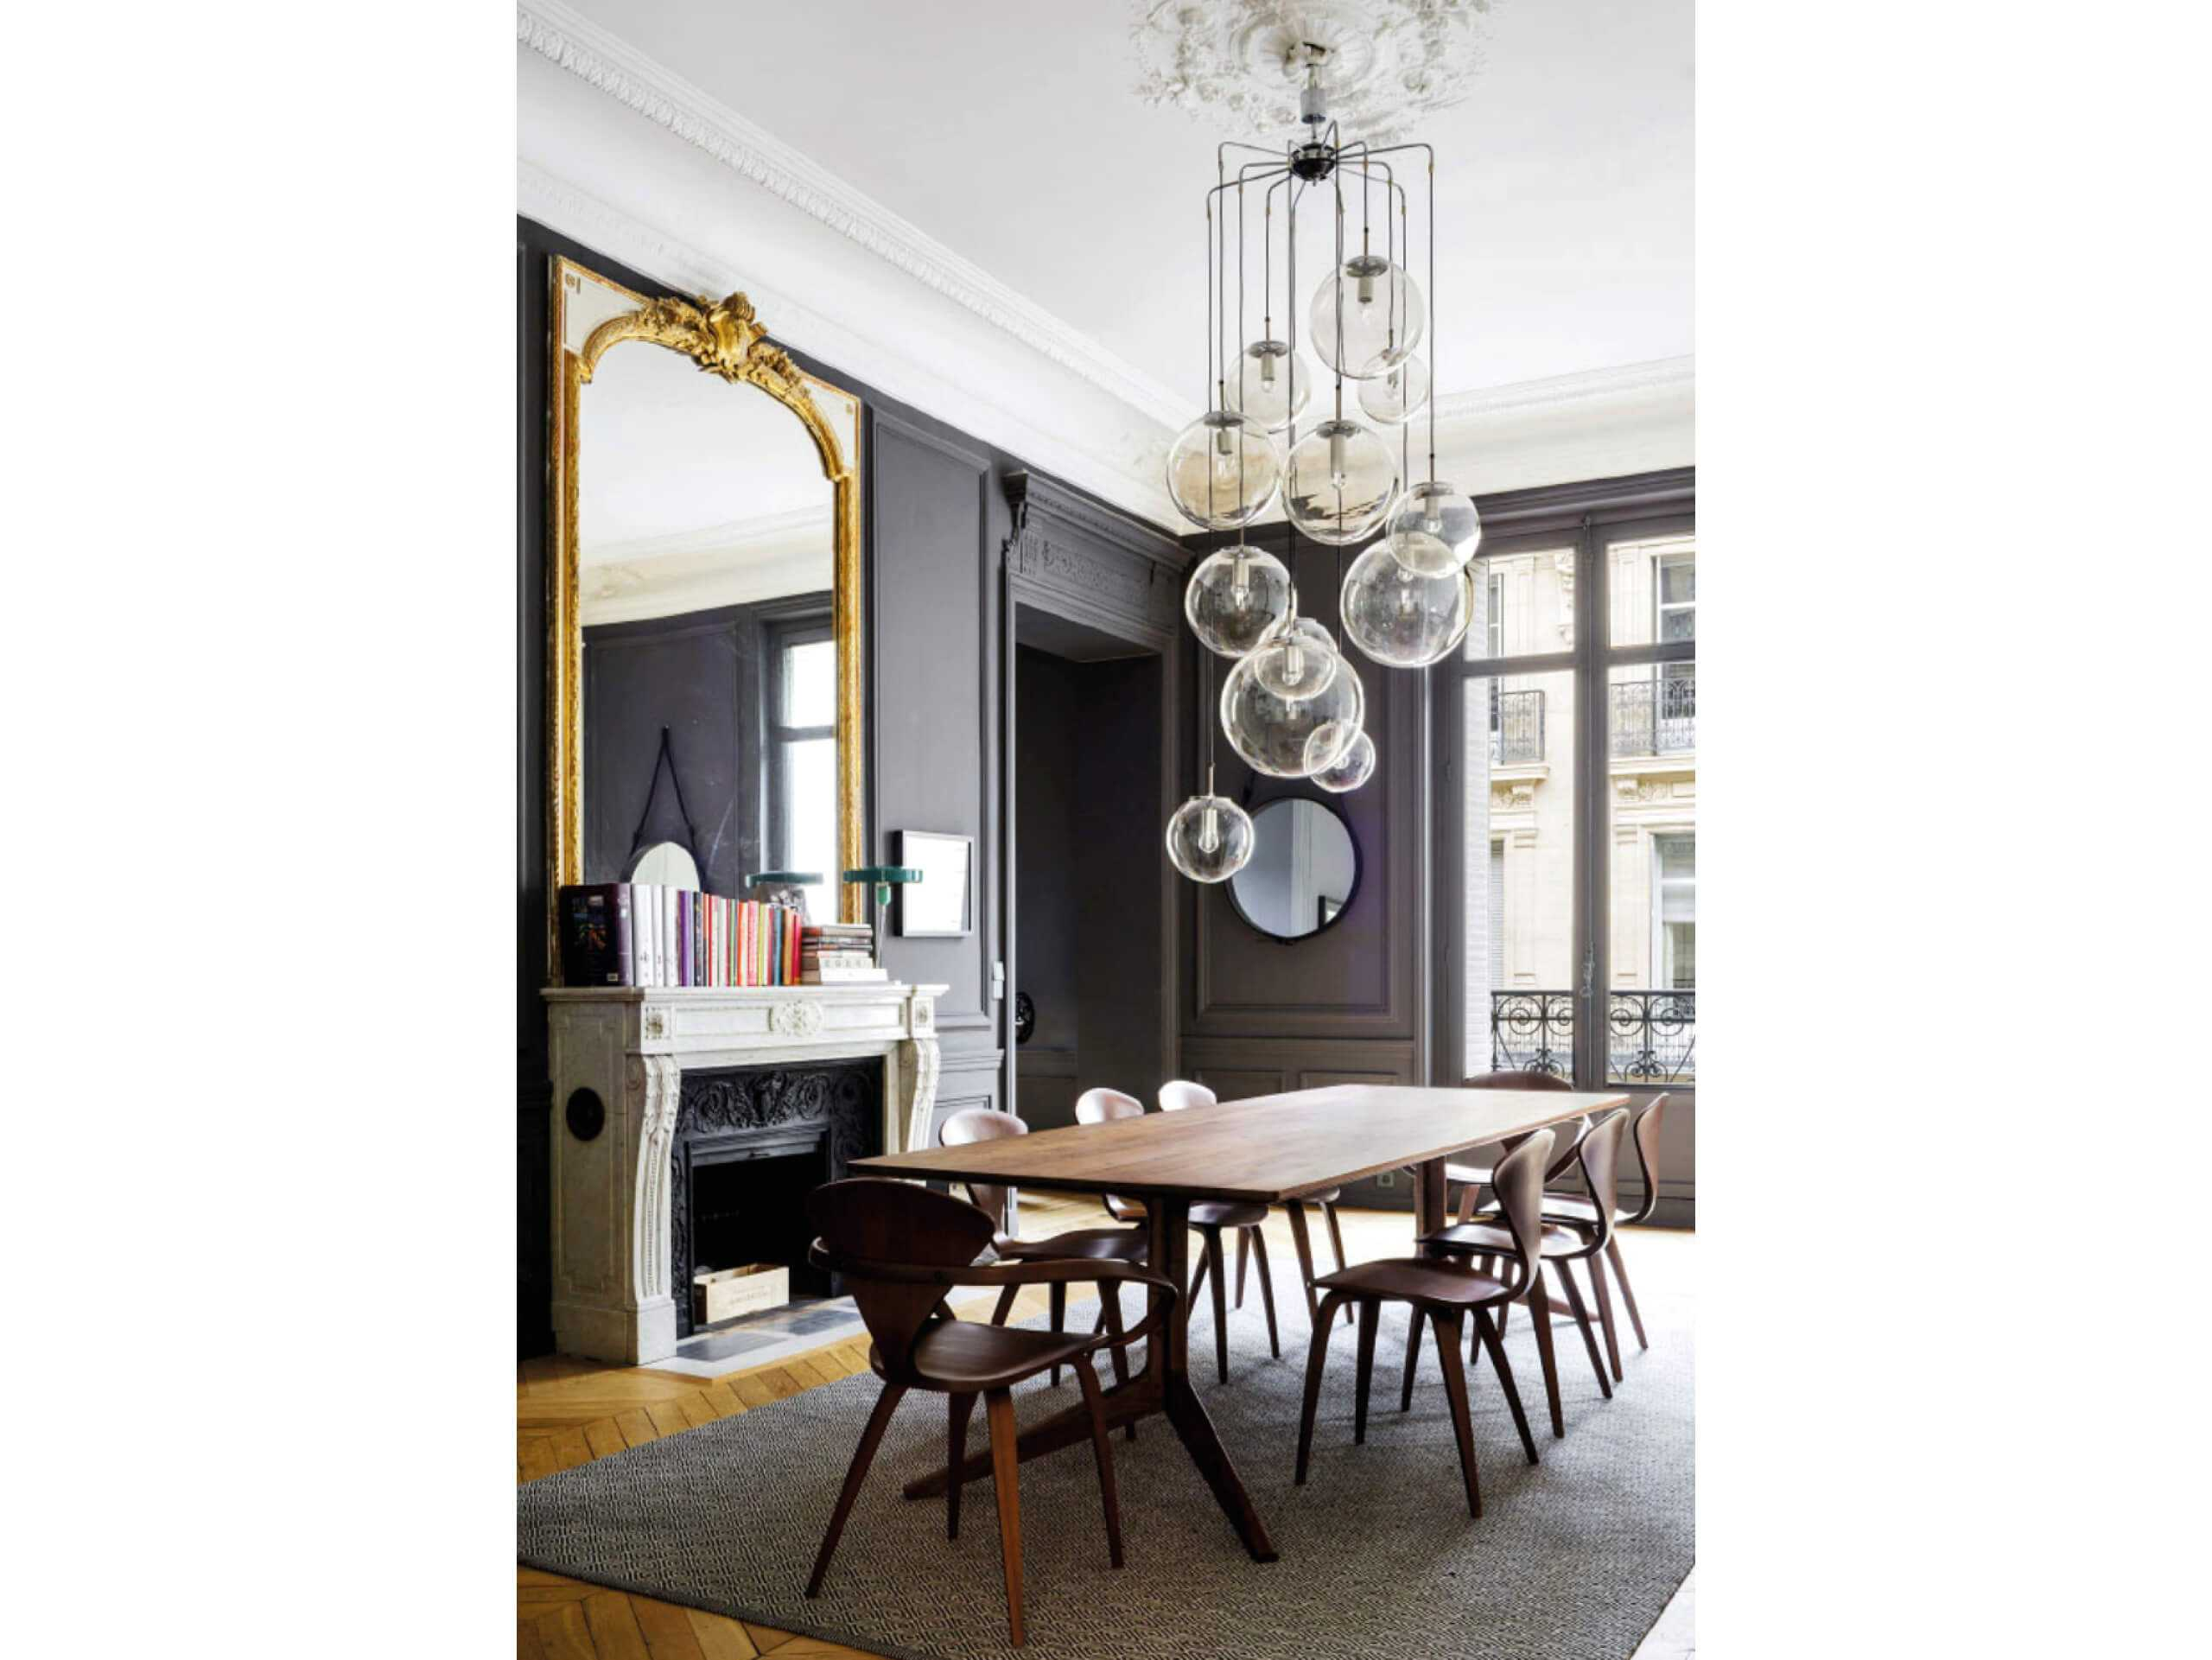 That wow factor: finishing touches in the form of beautiful lighting and ornate mirror. Image via Pinterest